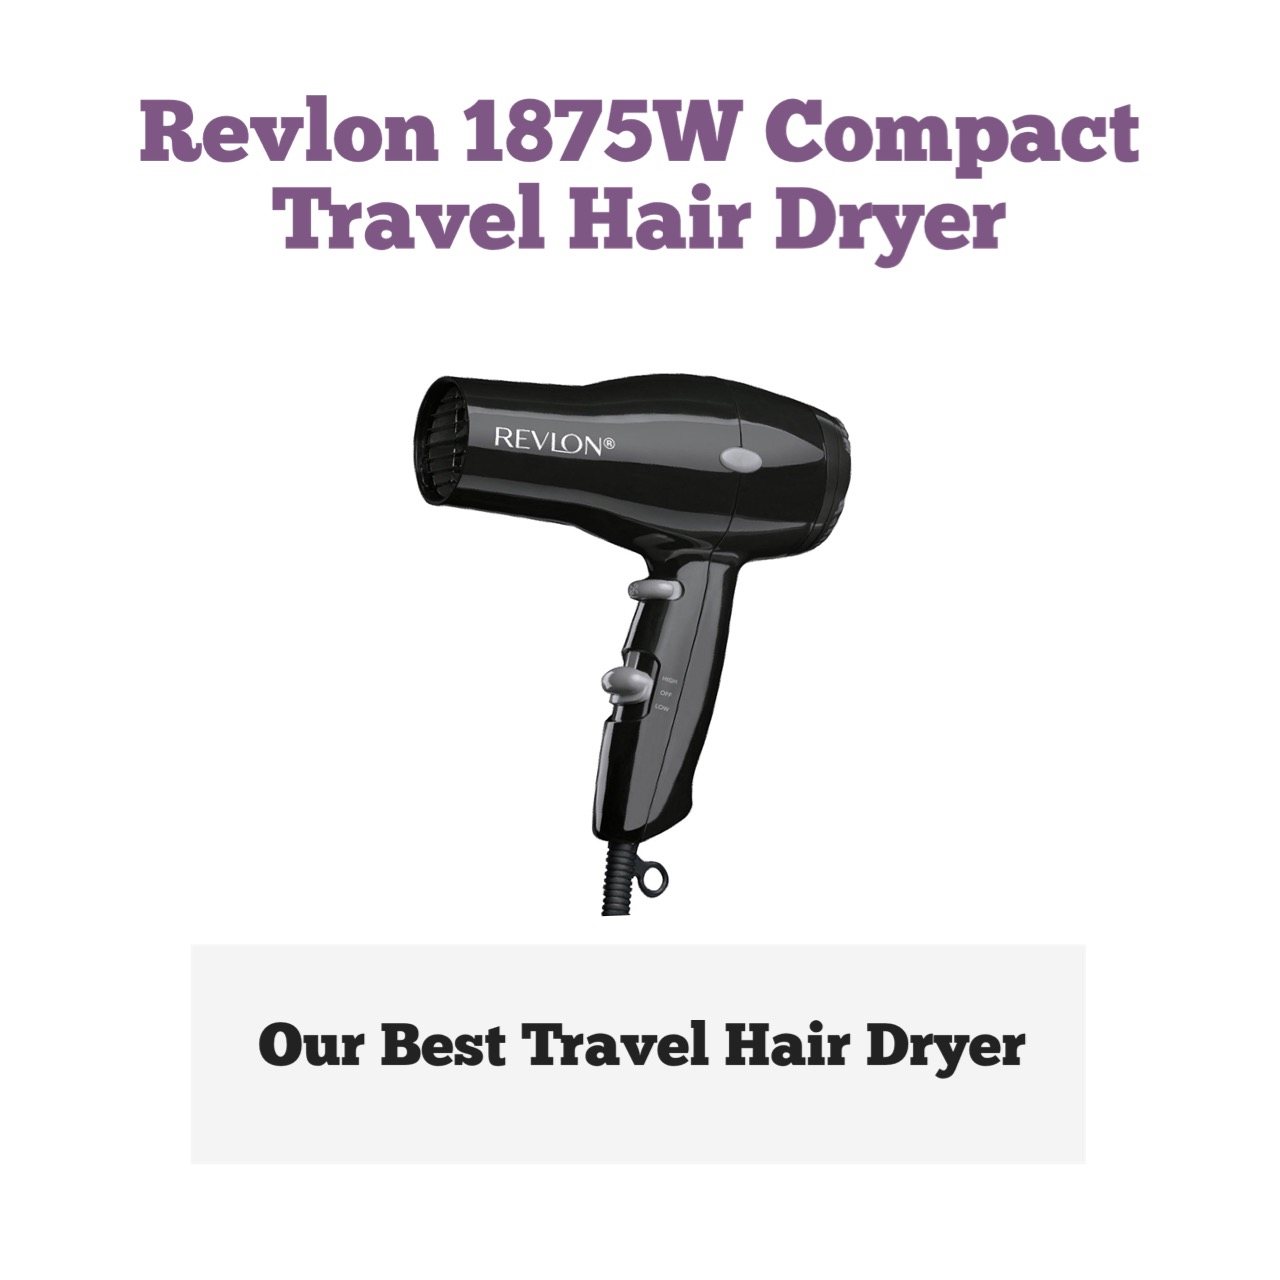 Revlon Compact Travel Hair Dryer